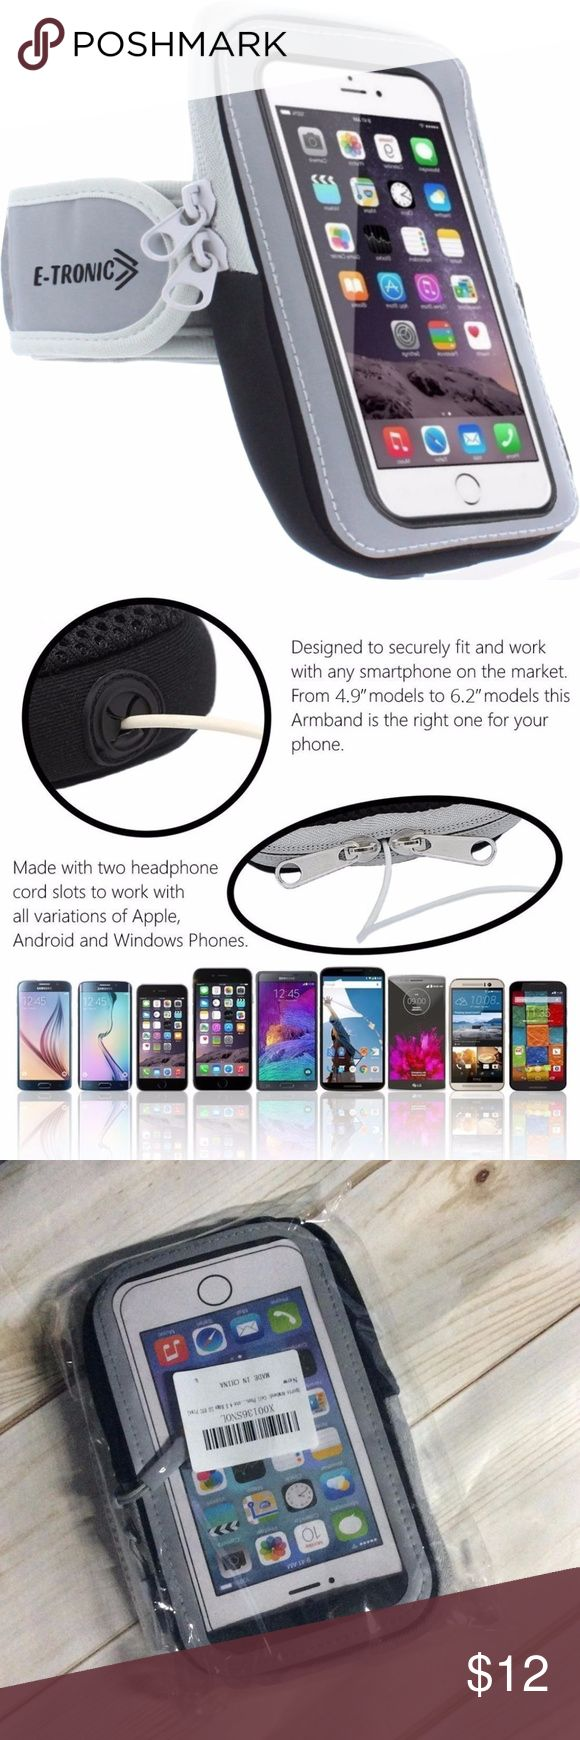 Sports Armband: Cell Phone Holder Case Arm Band Sports Armband: Cell Phone Holder Case Arm Band Strap With Zipper Pouch/ Mobile Exercise Running Workout For Apple iPhone 6 6S 7 Plus Touch Android Samsung Galaxy S5 S6 S7 Note 4 5 Edge LG HTC Pixel  box 4 Accessories Phone Cases